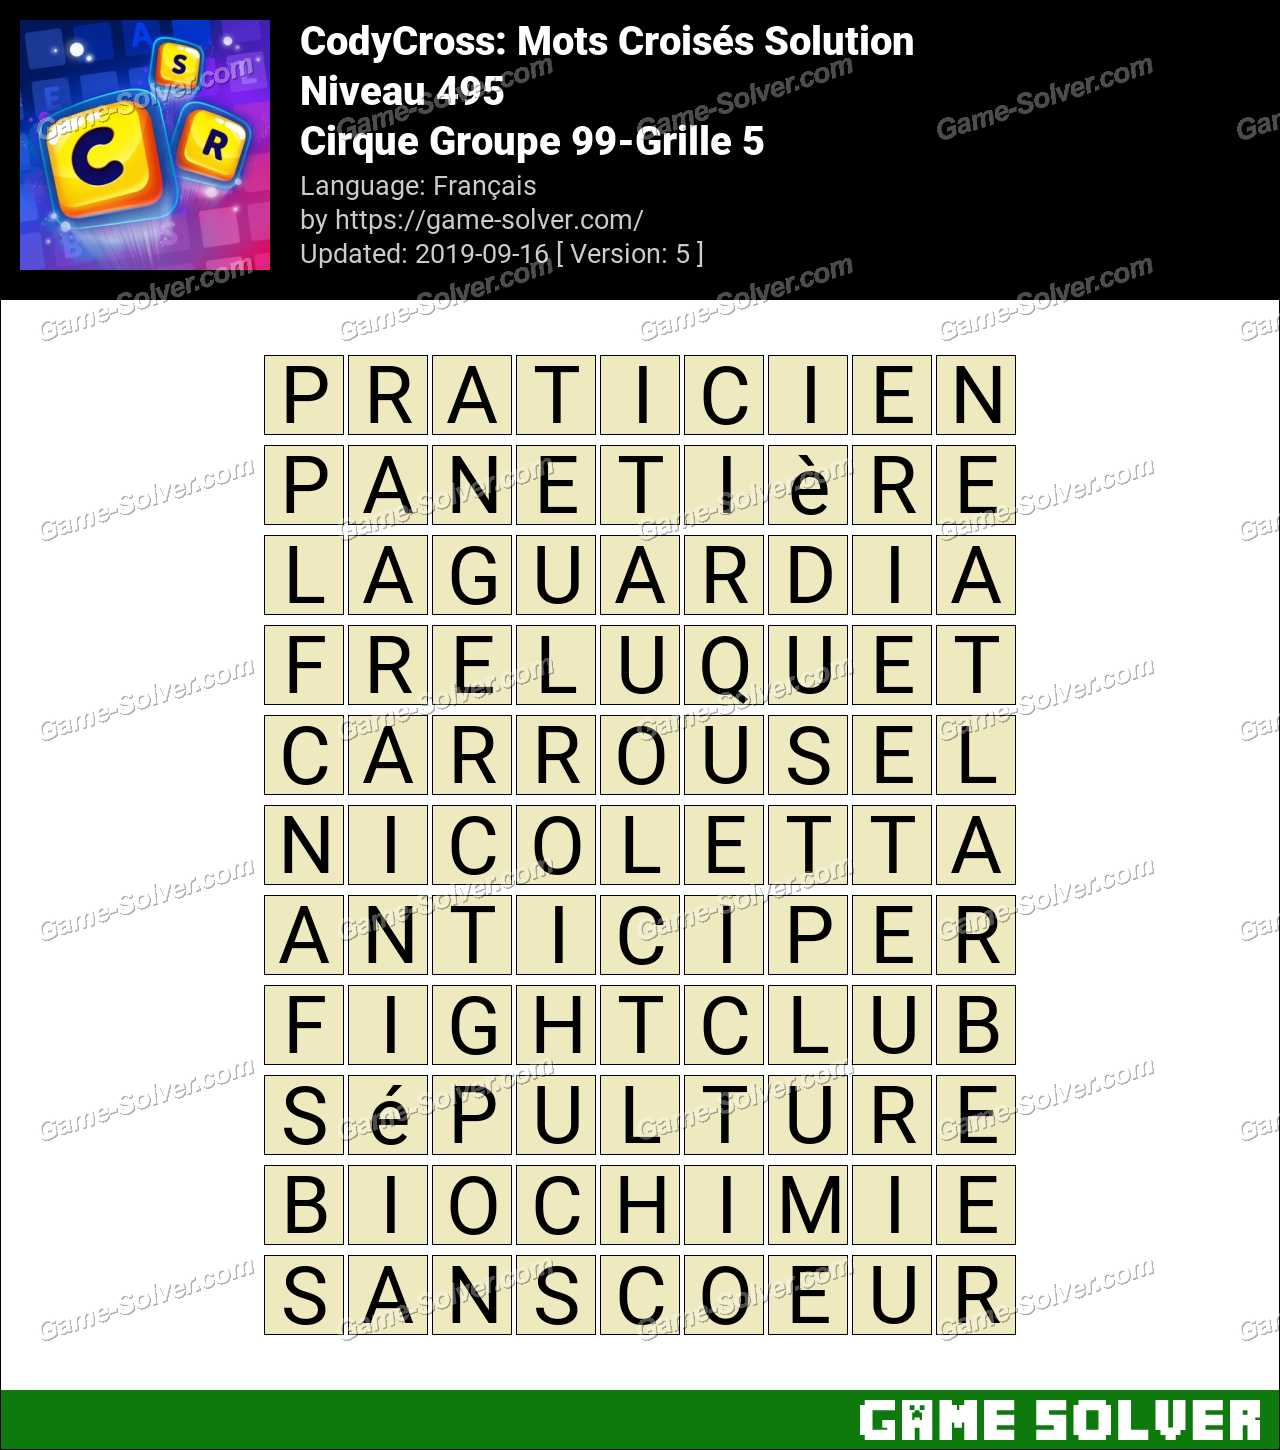 CodyCross Cirque Groupe 99-Grille 5 Solution